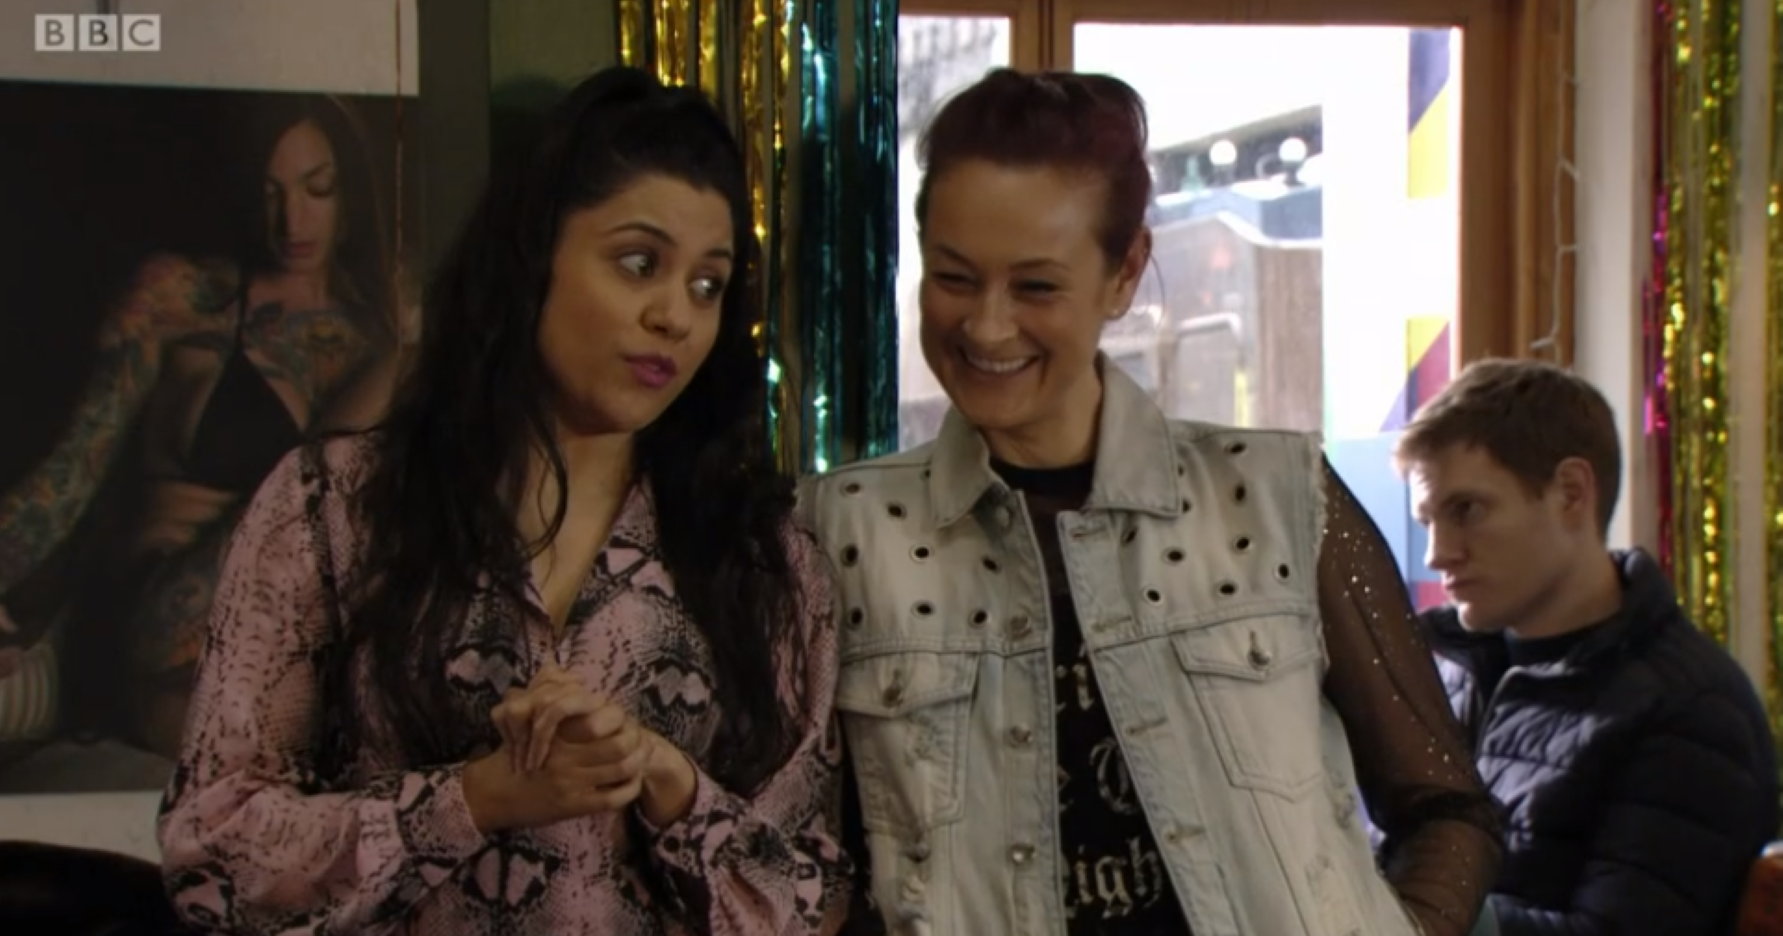 EastEnders viewers predict affair for Tina and Iqra after spotting hint in final episode